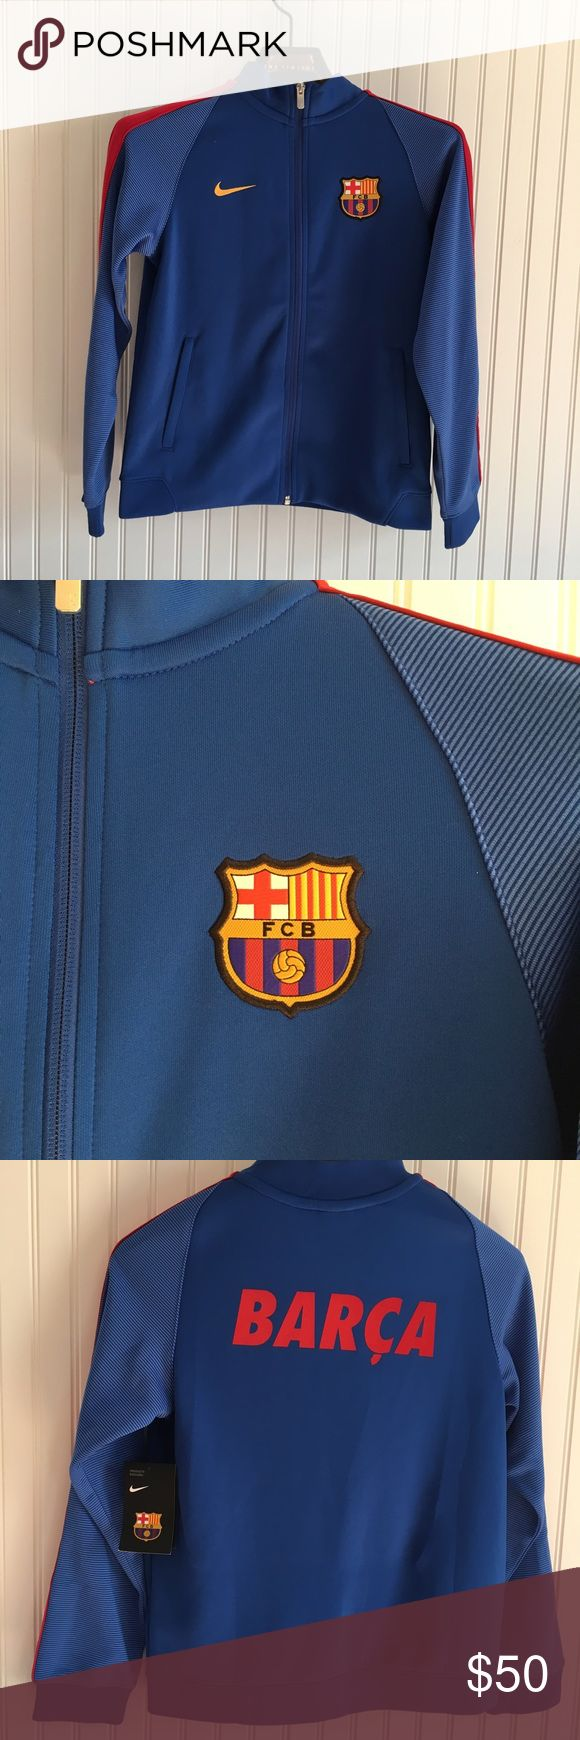 """New NIKE FC BARCELONA YOUTH JACKET Royal Blue Nike Barcelona youth warm up jacket in a size Large. This is new with tags. With Barca on the back. Elastic waistband and zippered side pockets. One small stain on the back on the upper right( see pic), No rips or holes,   APPROXIMATE MEASUREMENTS FLAT ACROSS:  Chest:18.5"""" Waist:18"""" Length: 23.5"""" Nike Jackets & Coats"""